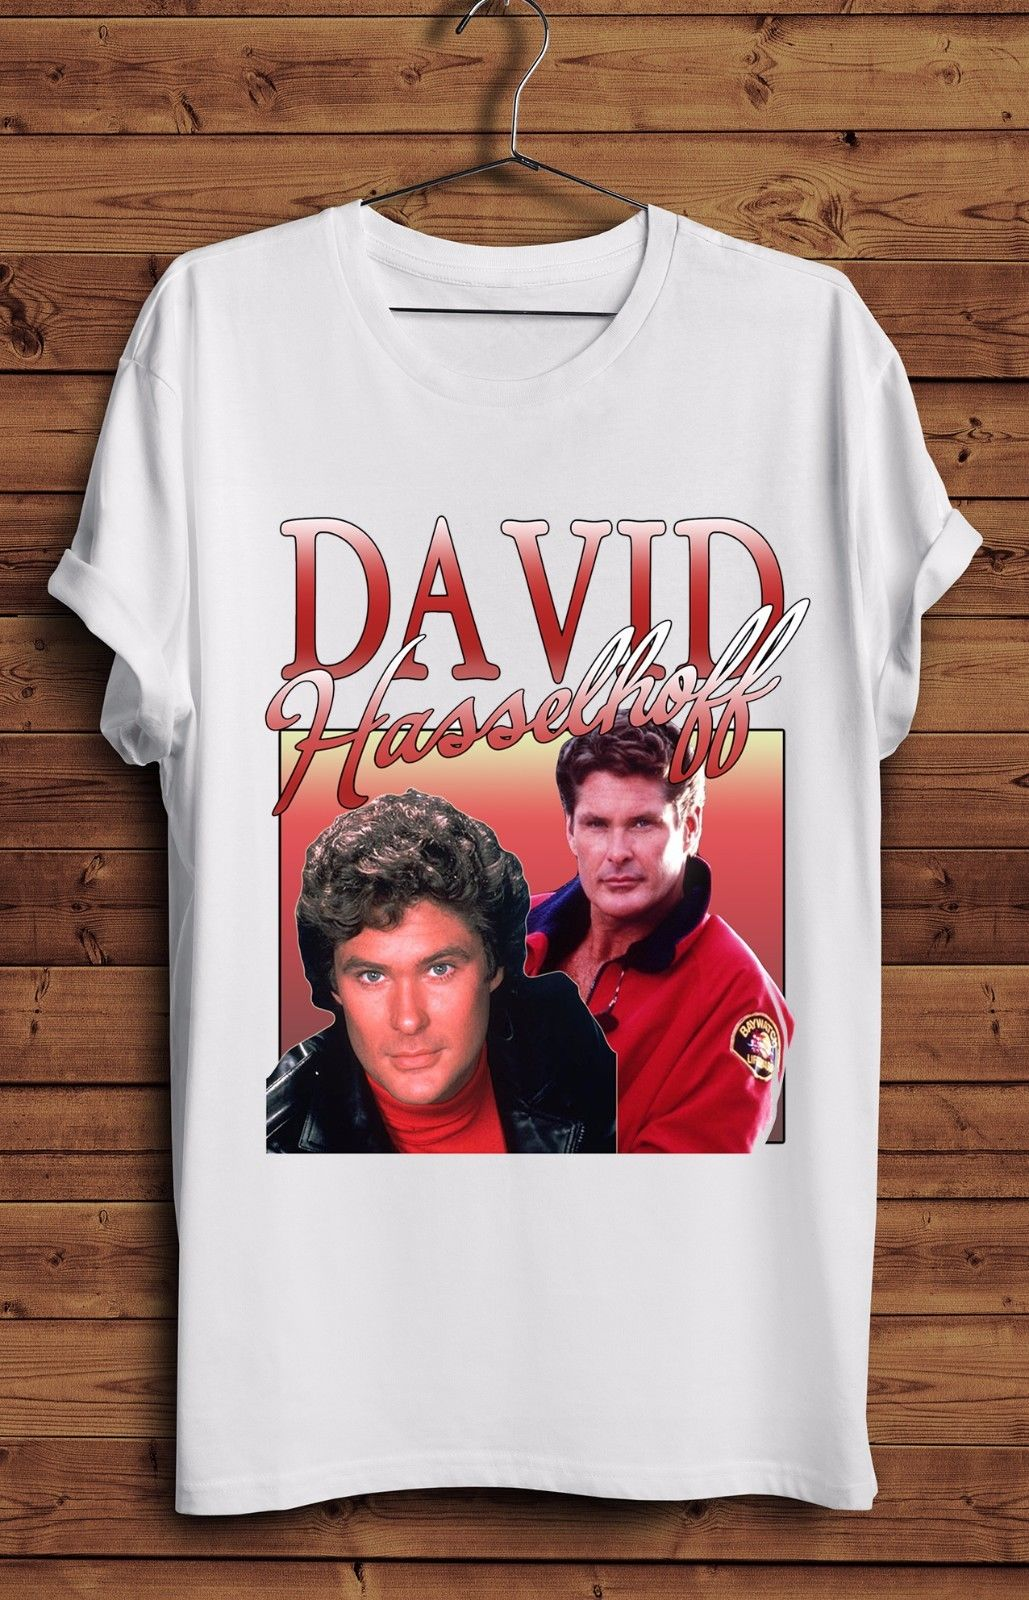 super cute sleek huge inventory US $13.04 13% OFF|David Hasselhoff T Shirt 90s Homage Mich Vintage Knight  Rider Baywatch Night Cotton Men T Shirts Classical Top Tee Plus Size-in ...